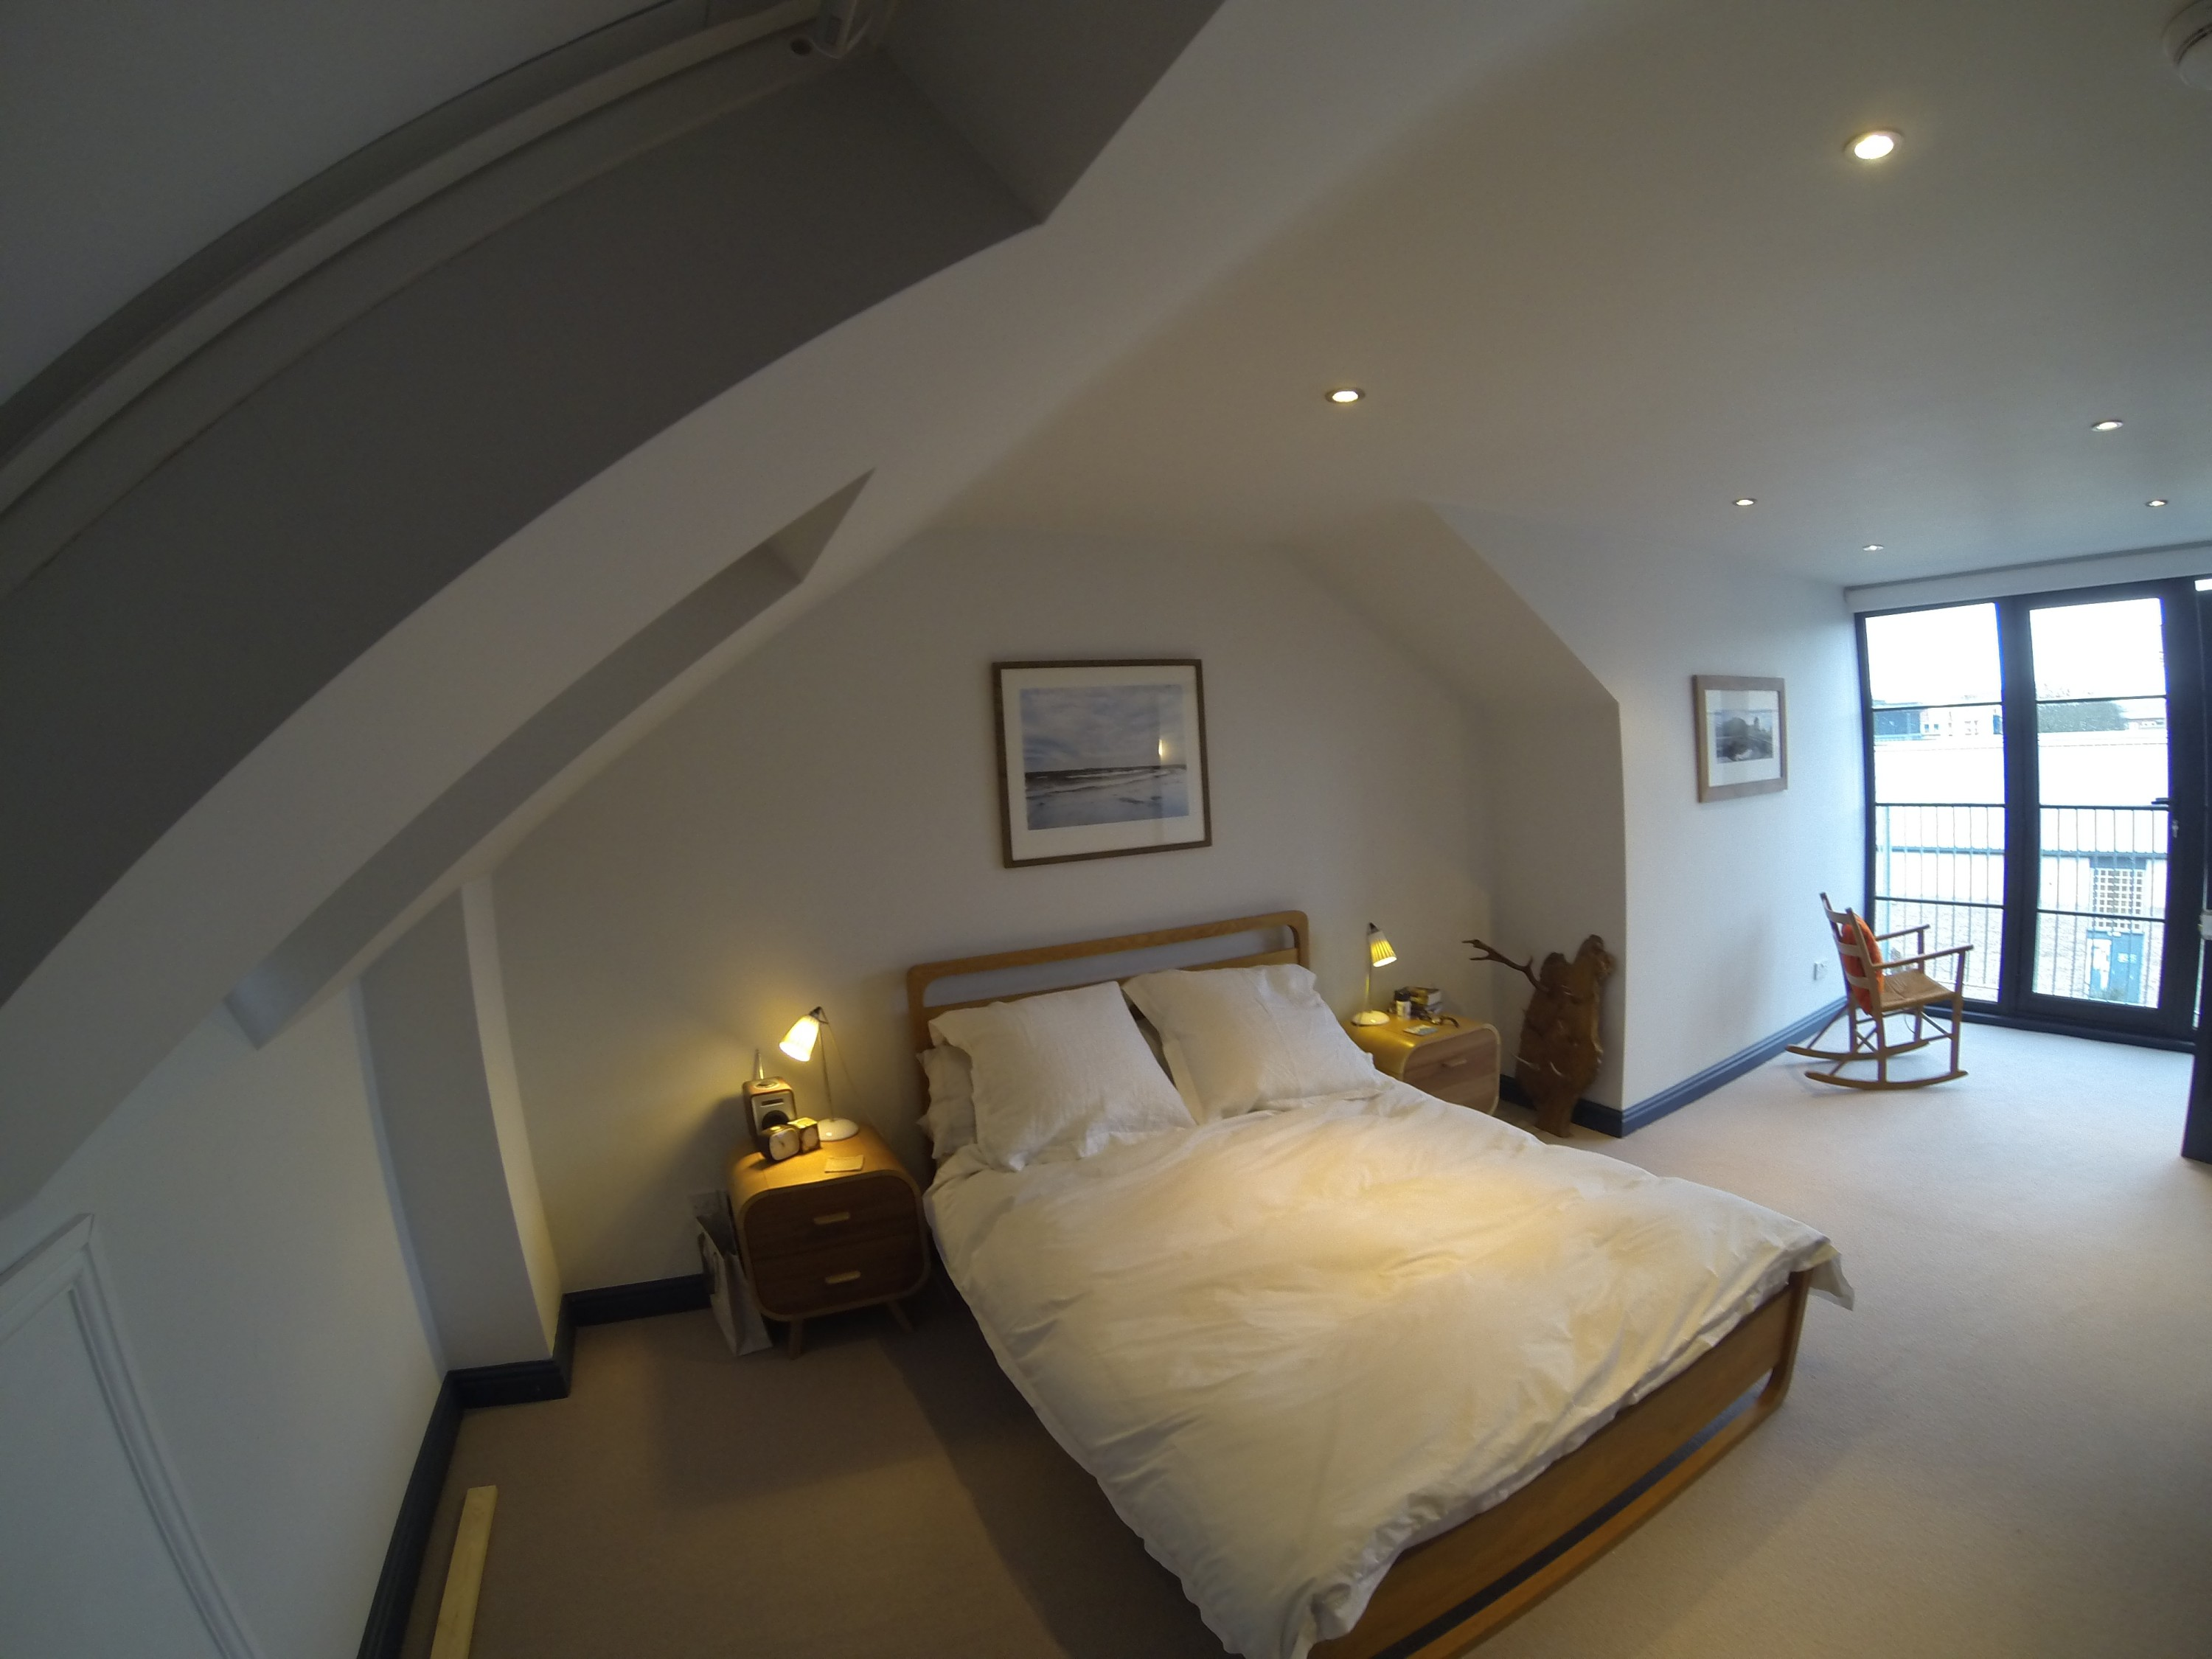 Gallery loft conversions construction our projects - Loft conversion bedroom design ideas ...